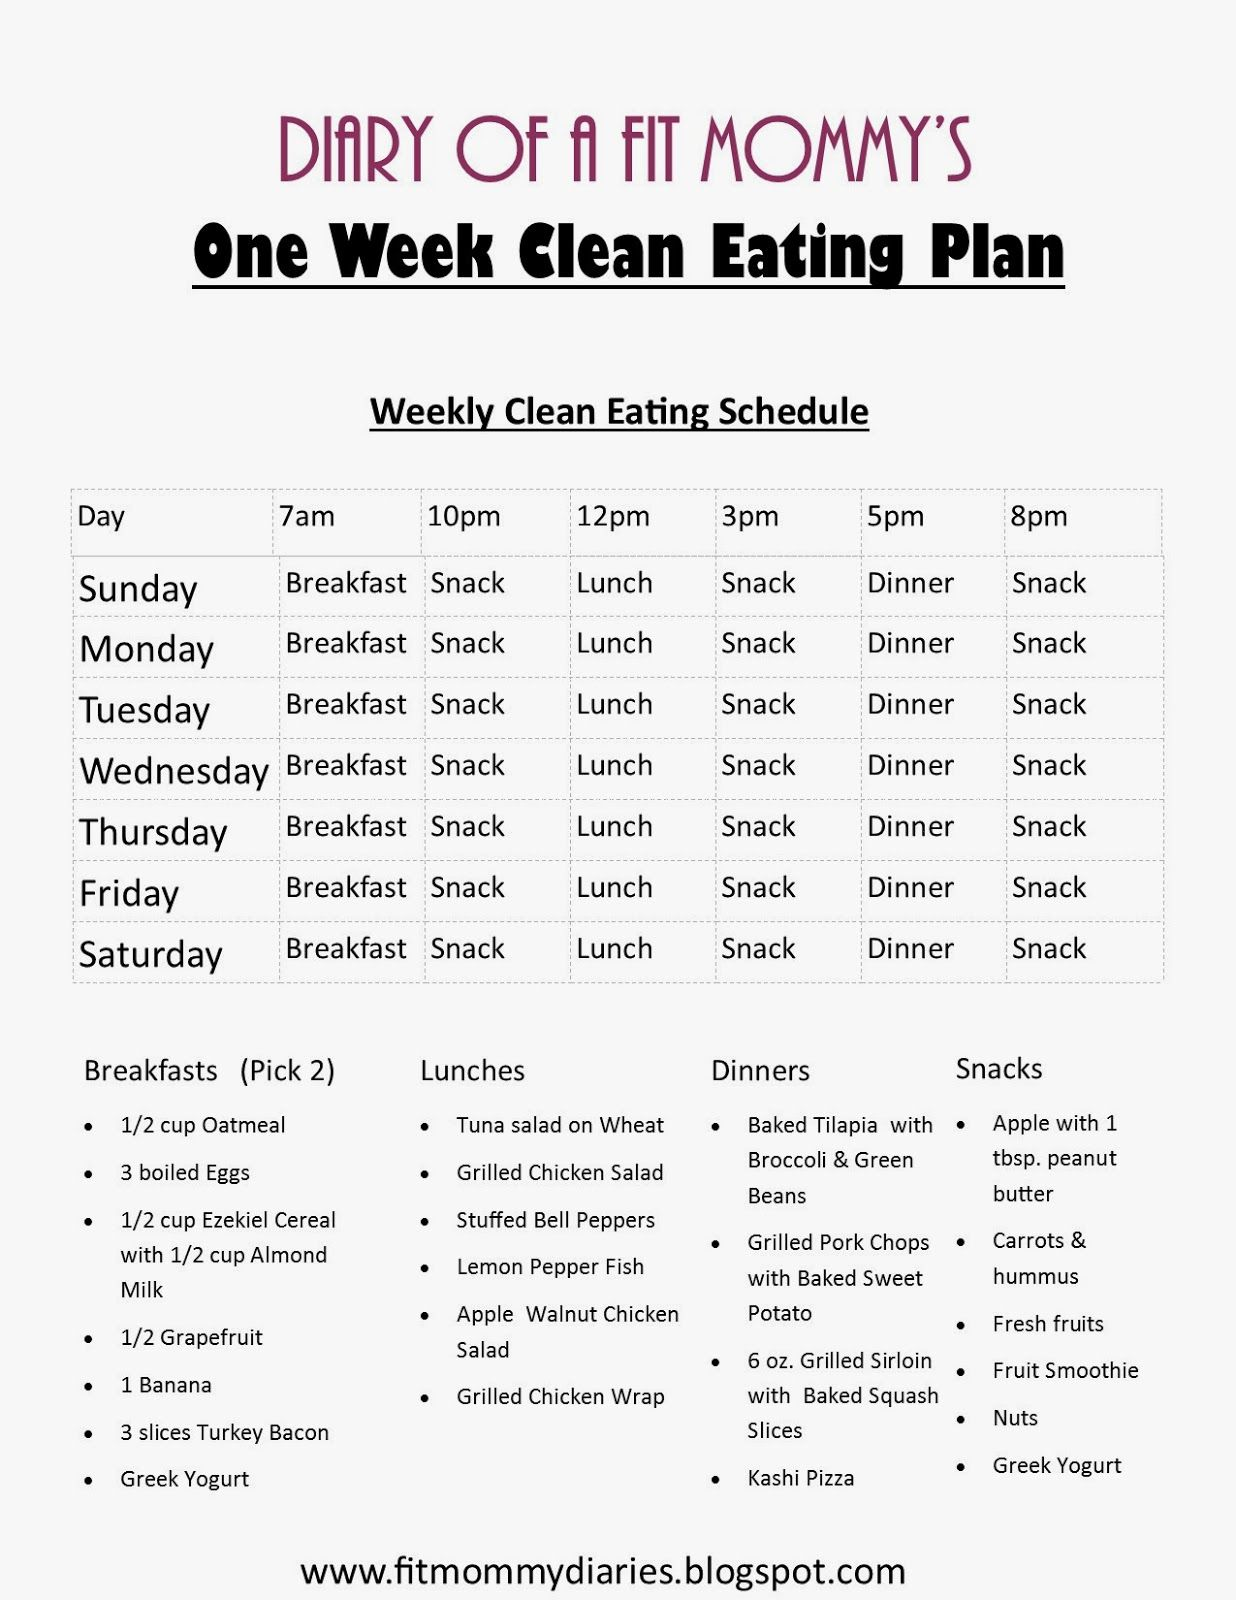 1 week healthy food plan - 14 Day Clean Eating Meal Plan For The Whole Family